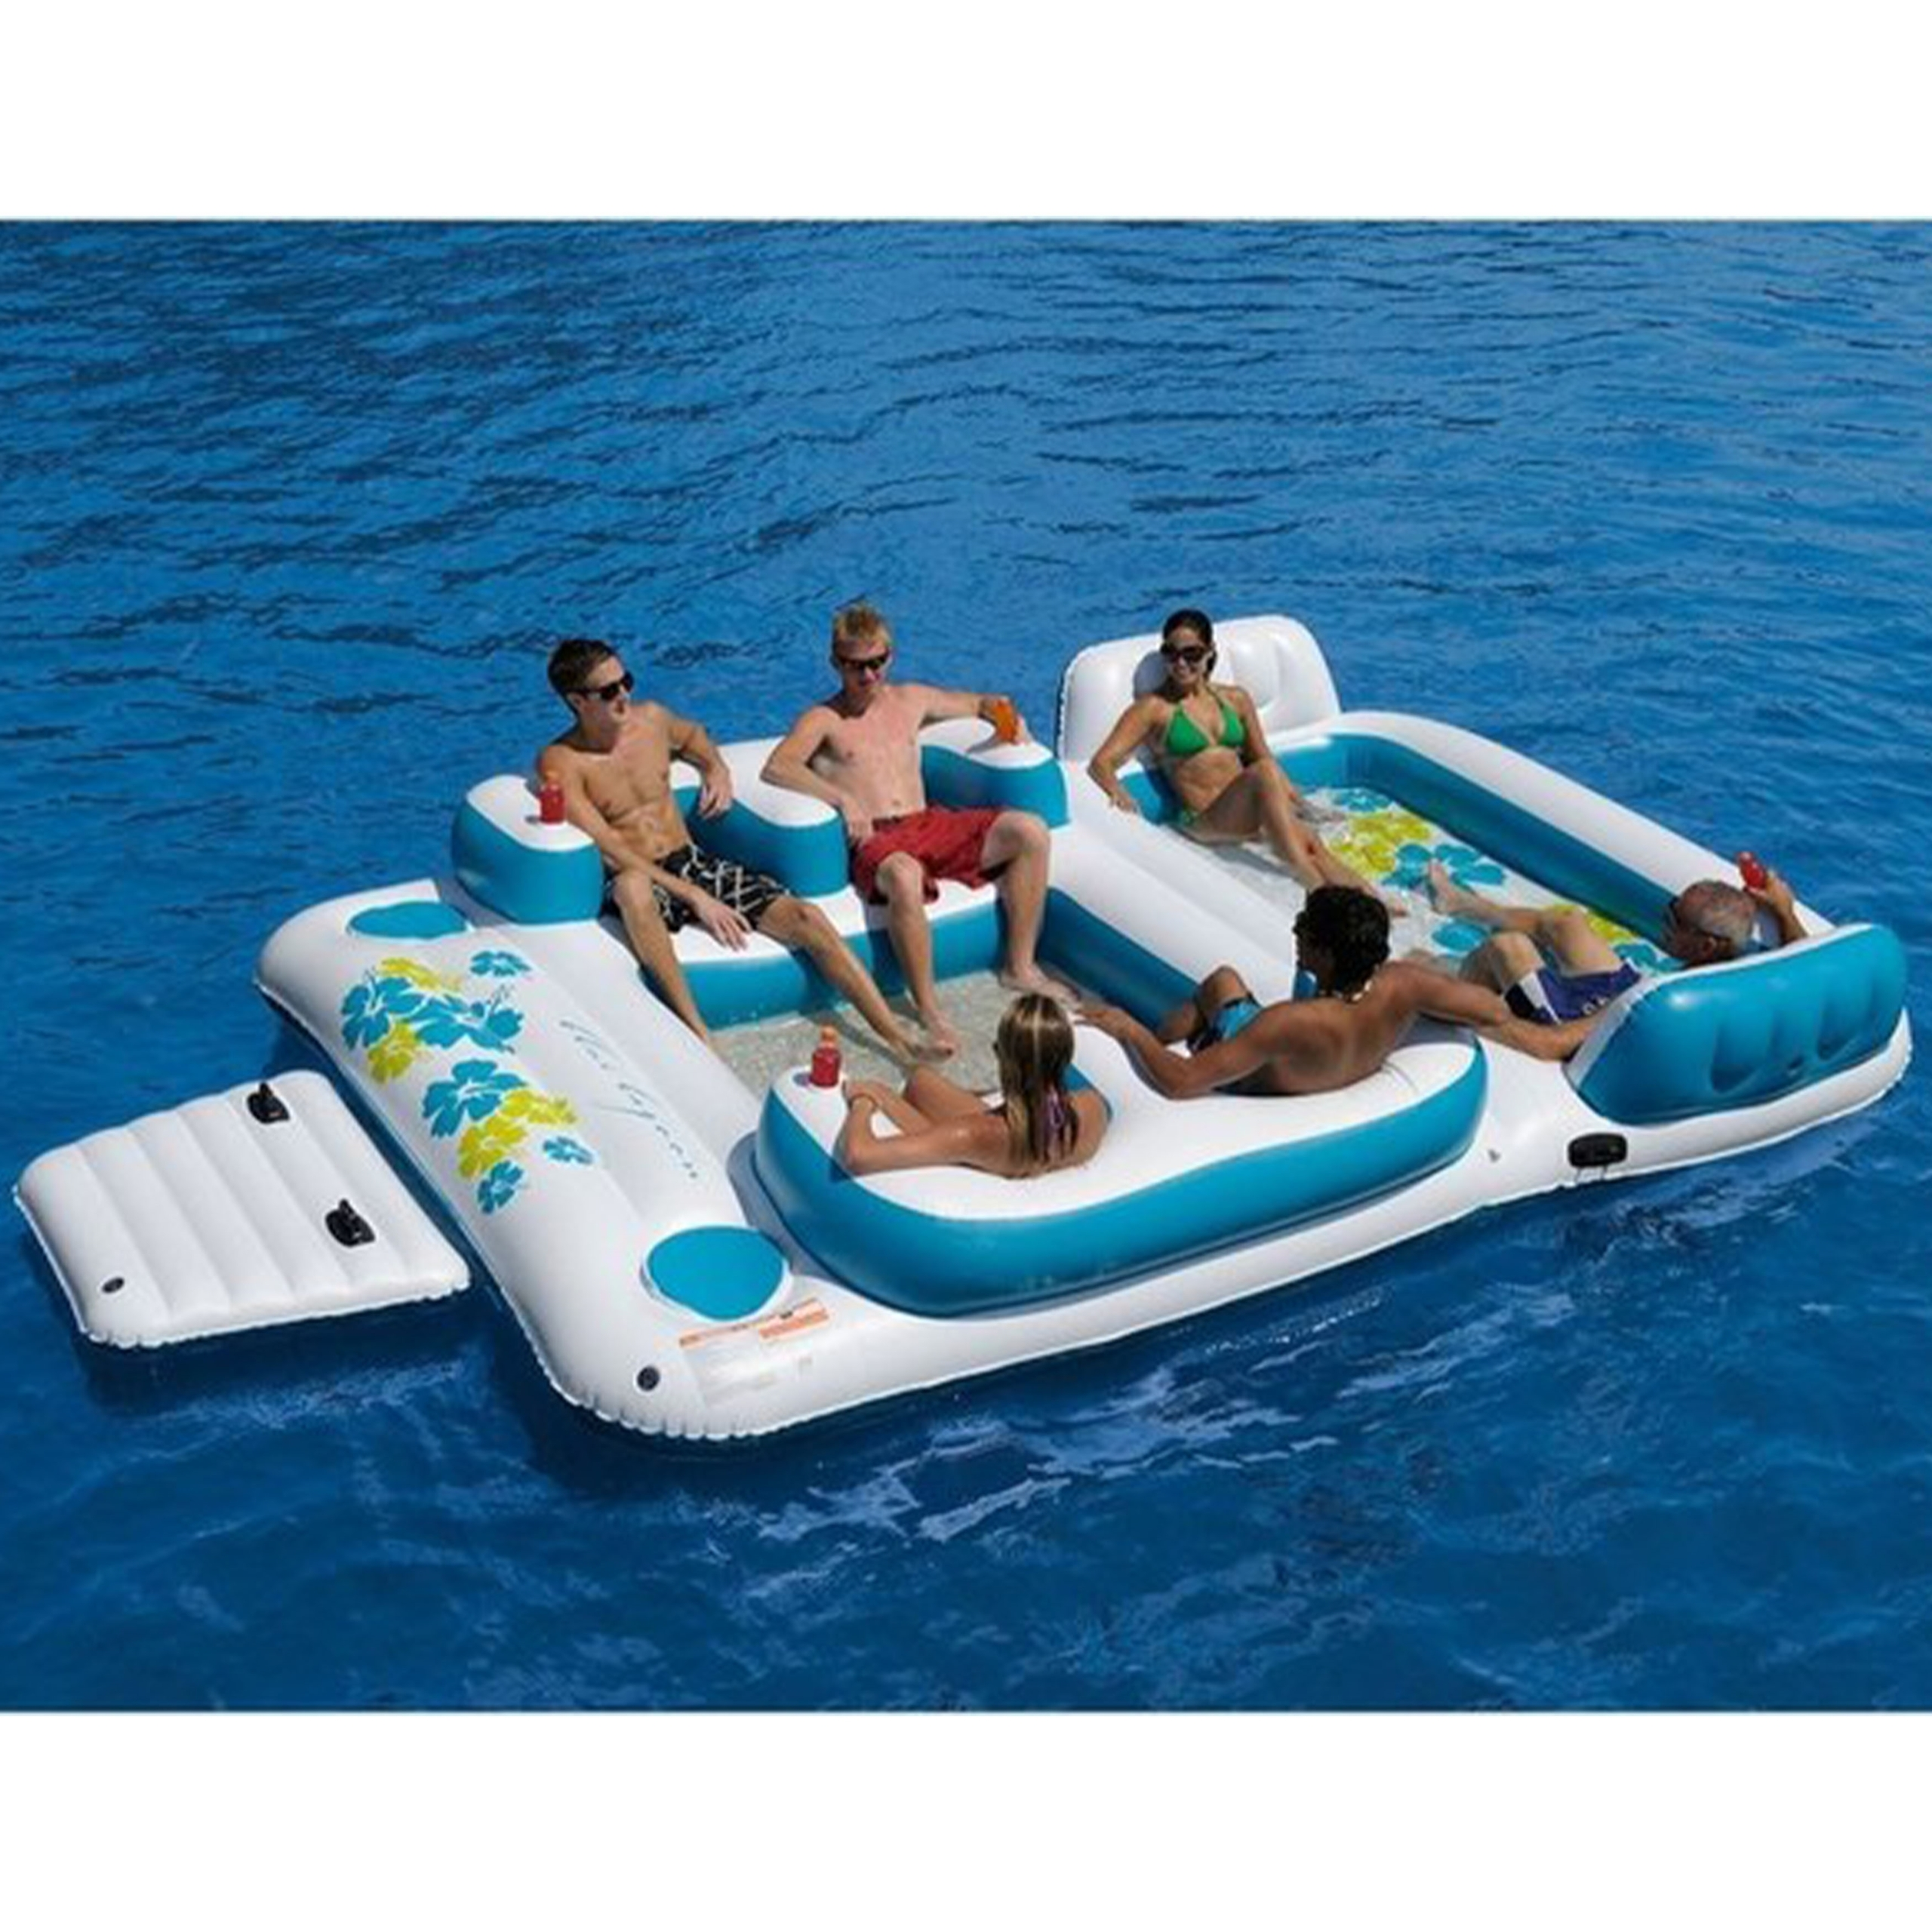 Sofina 2013 Inflatable 6 Person Pool Raft Floating Island W 2 Built In Coolers